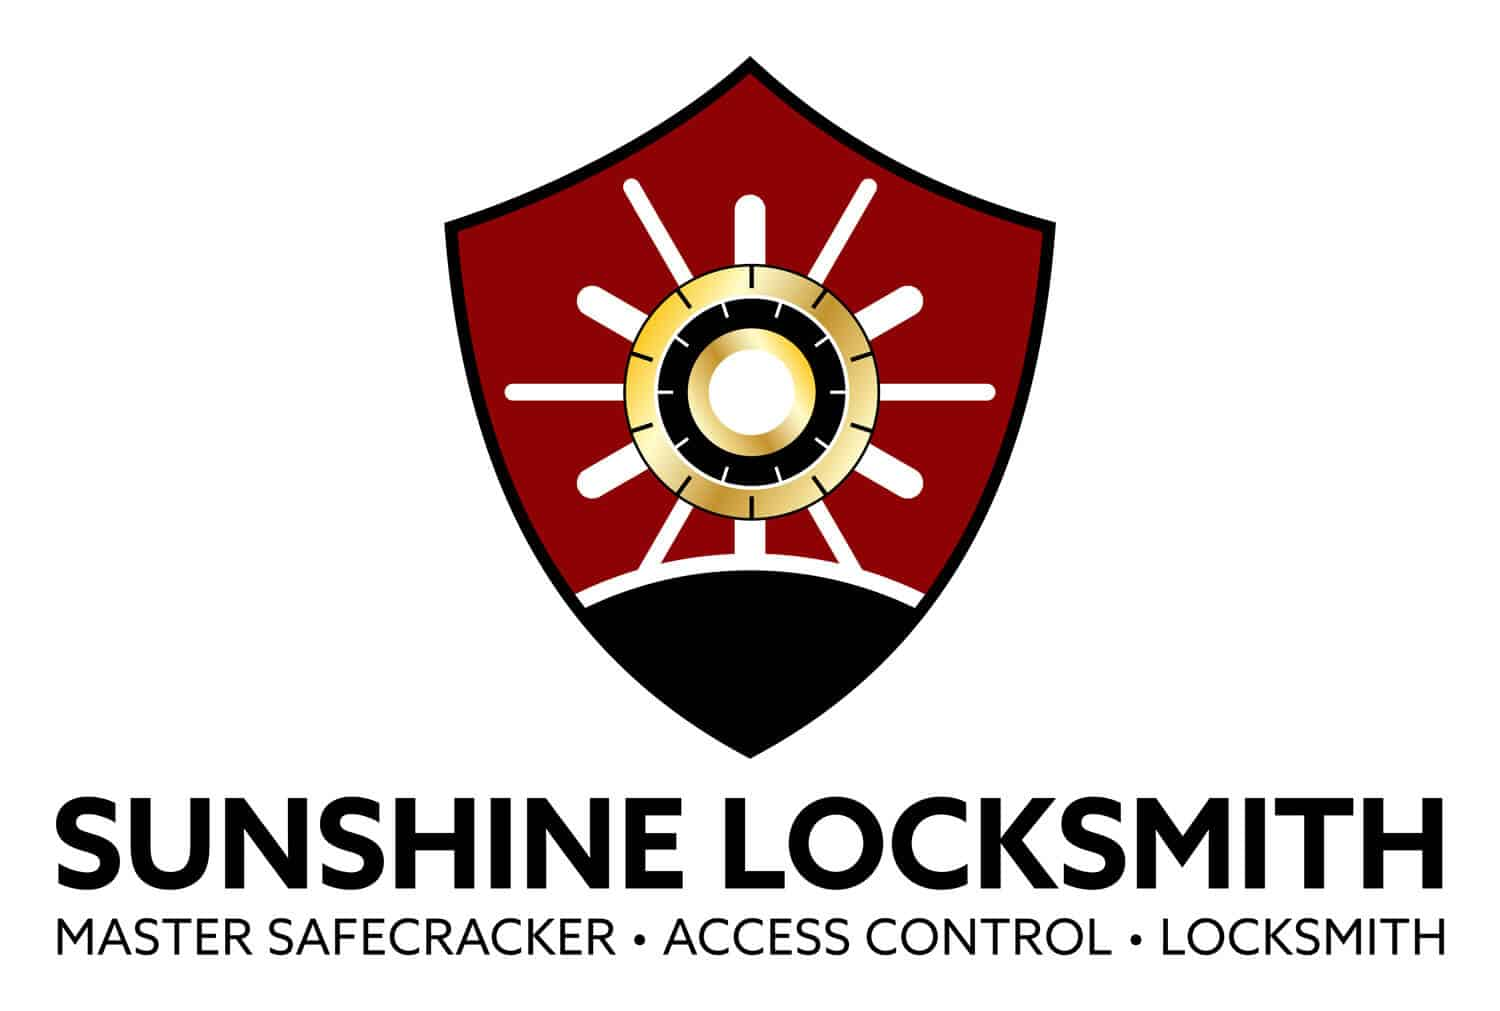 SUNSHINE_LOCKSMITH_Logo_Design_By_UziMedia